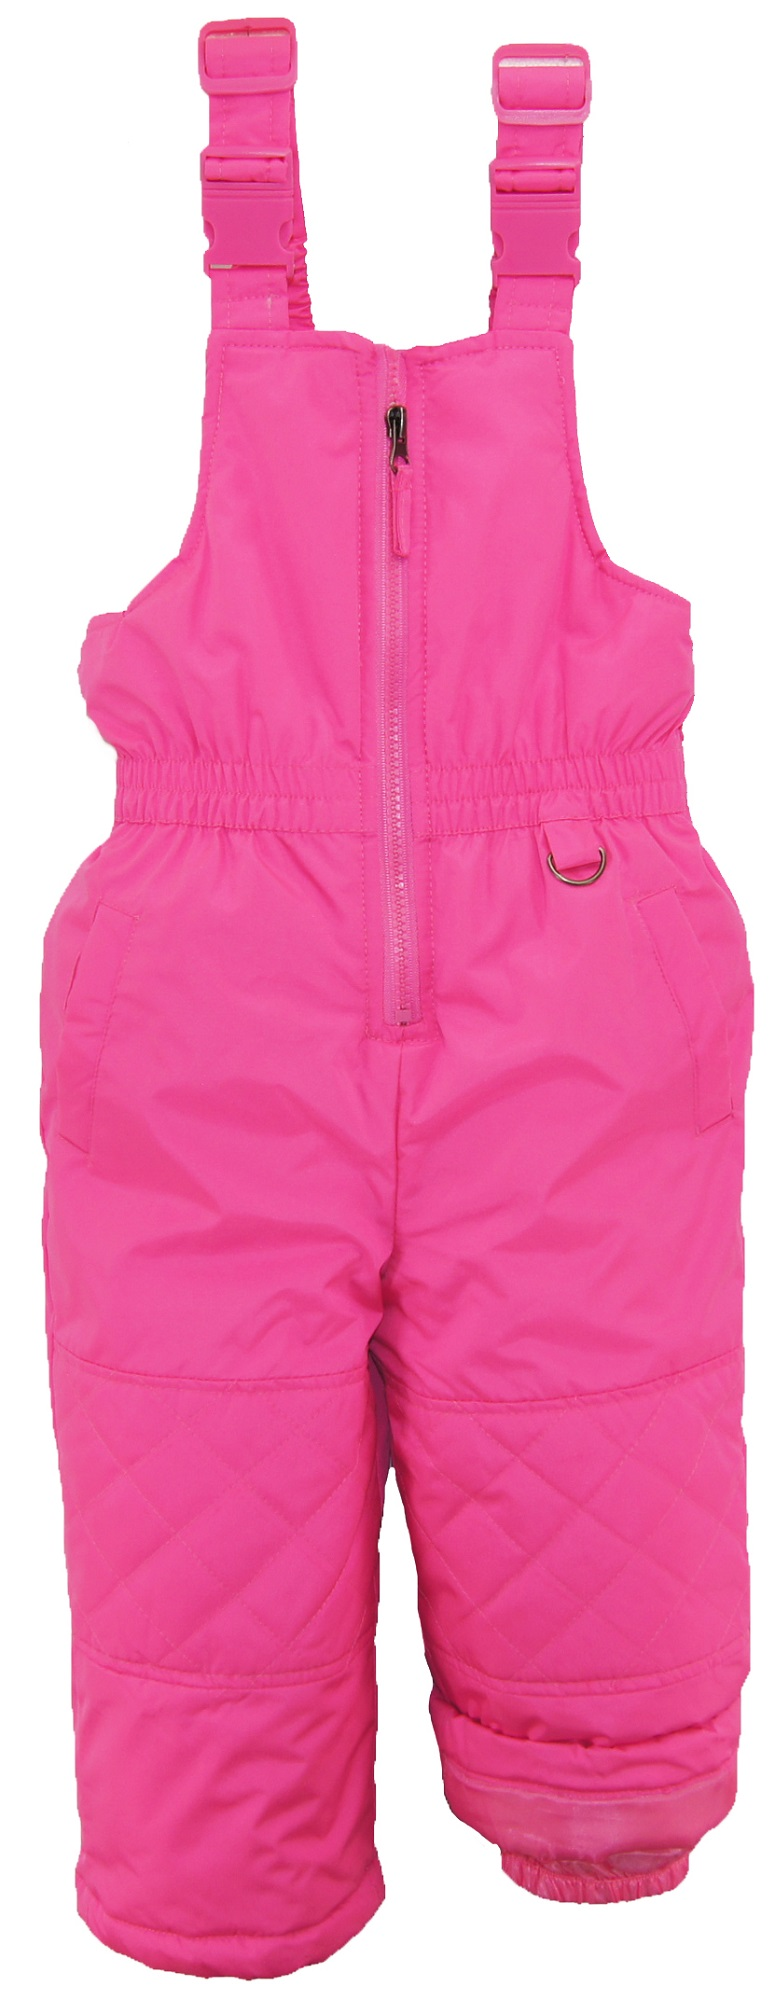 bunting winter snowsuit platinum piece itm pink one warm puffer girls pram baby